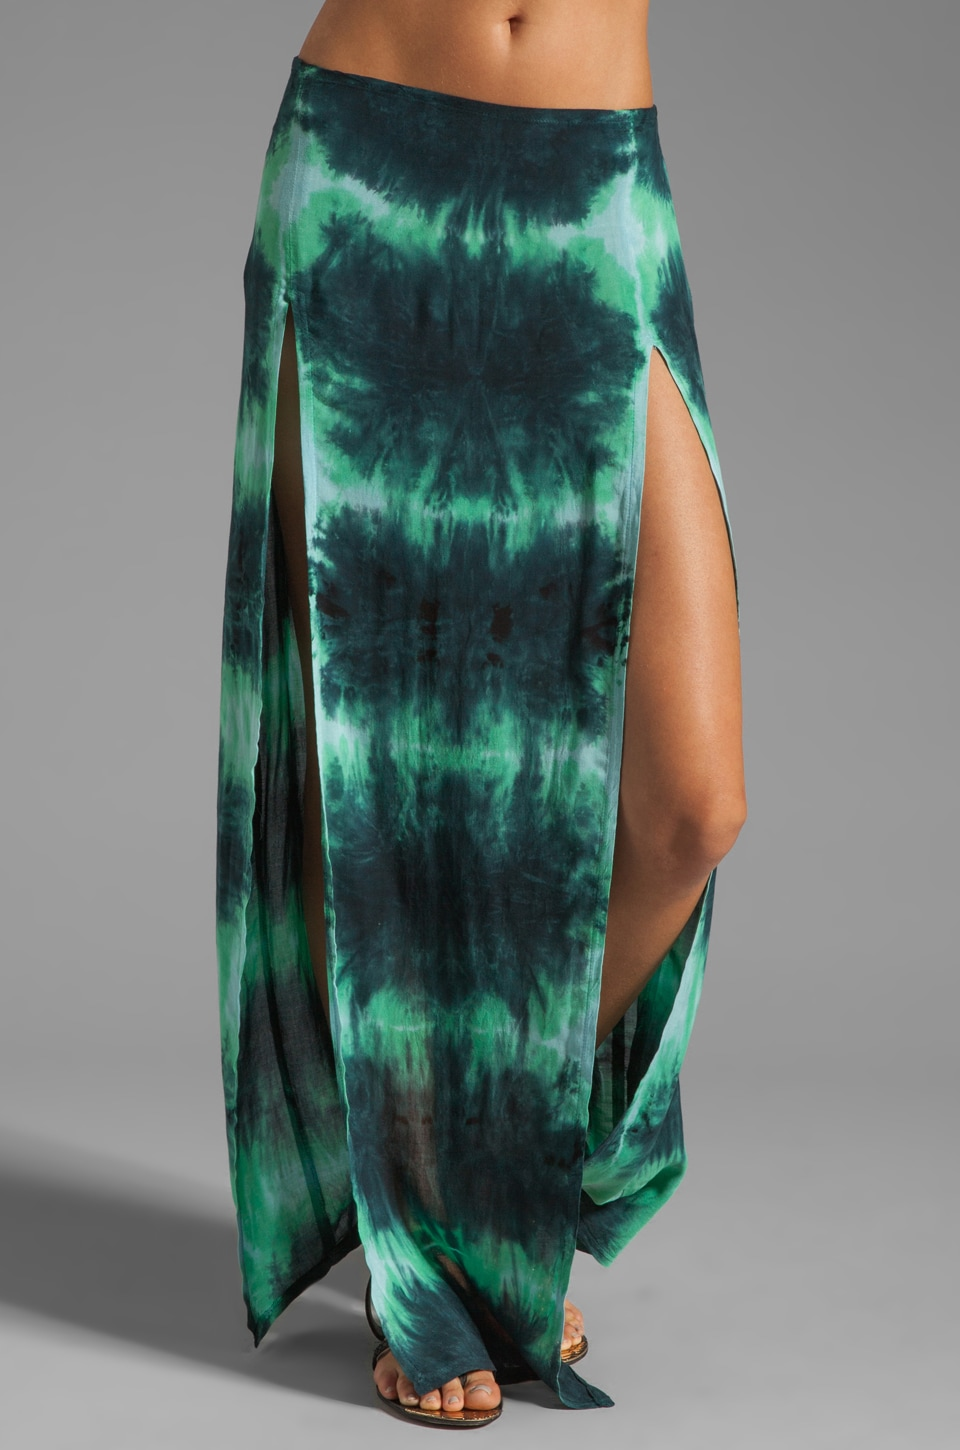 Blu Moon Two Slit Skirt in Aqua Tie Dye